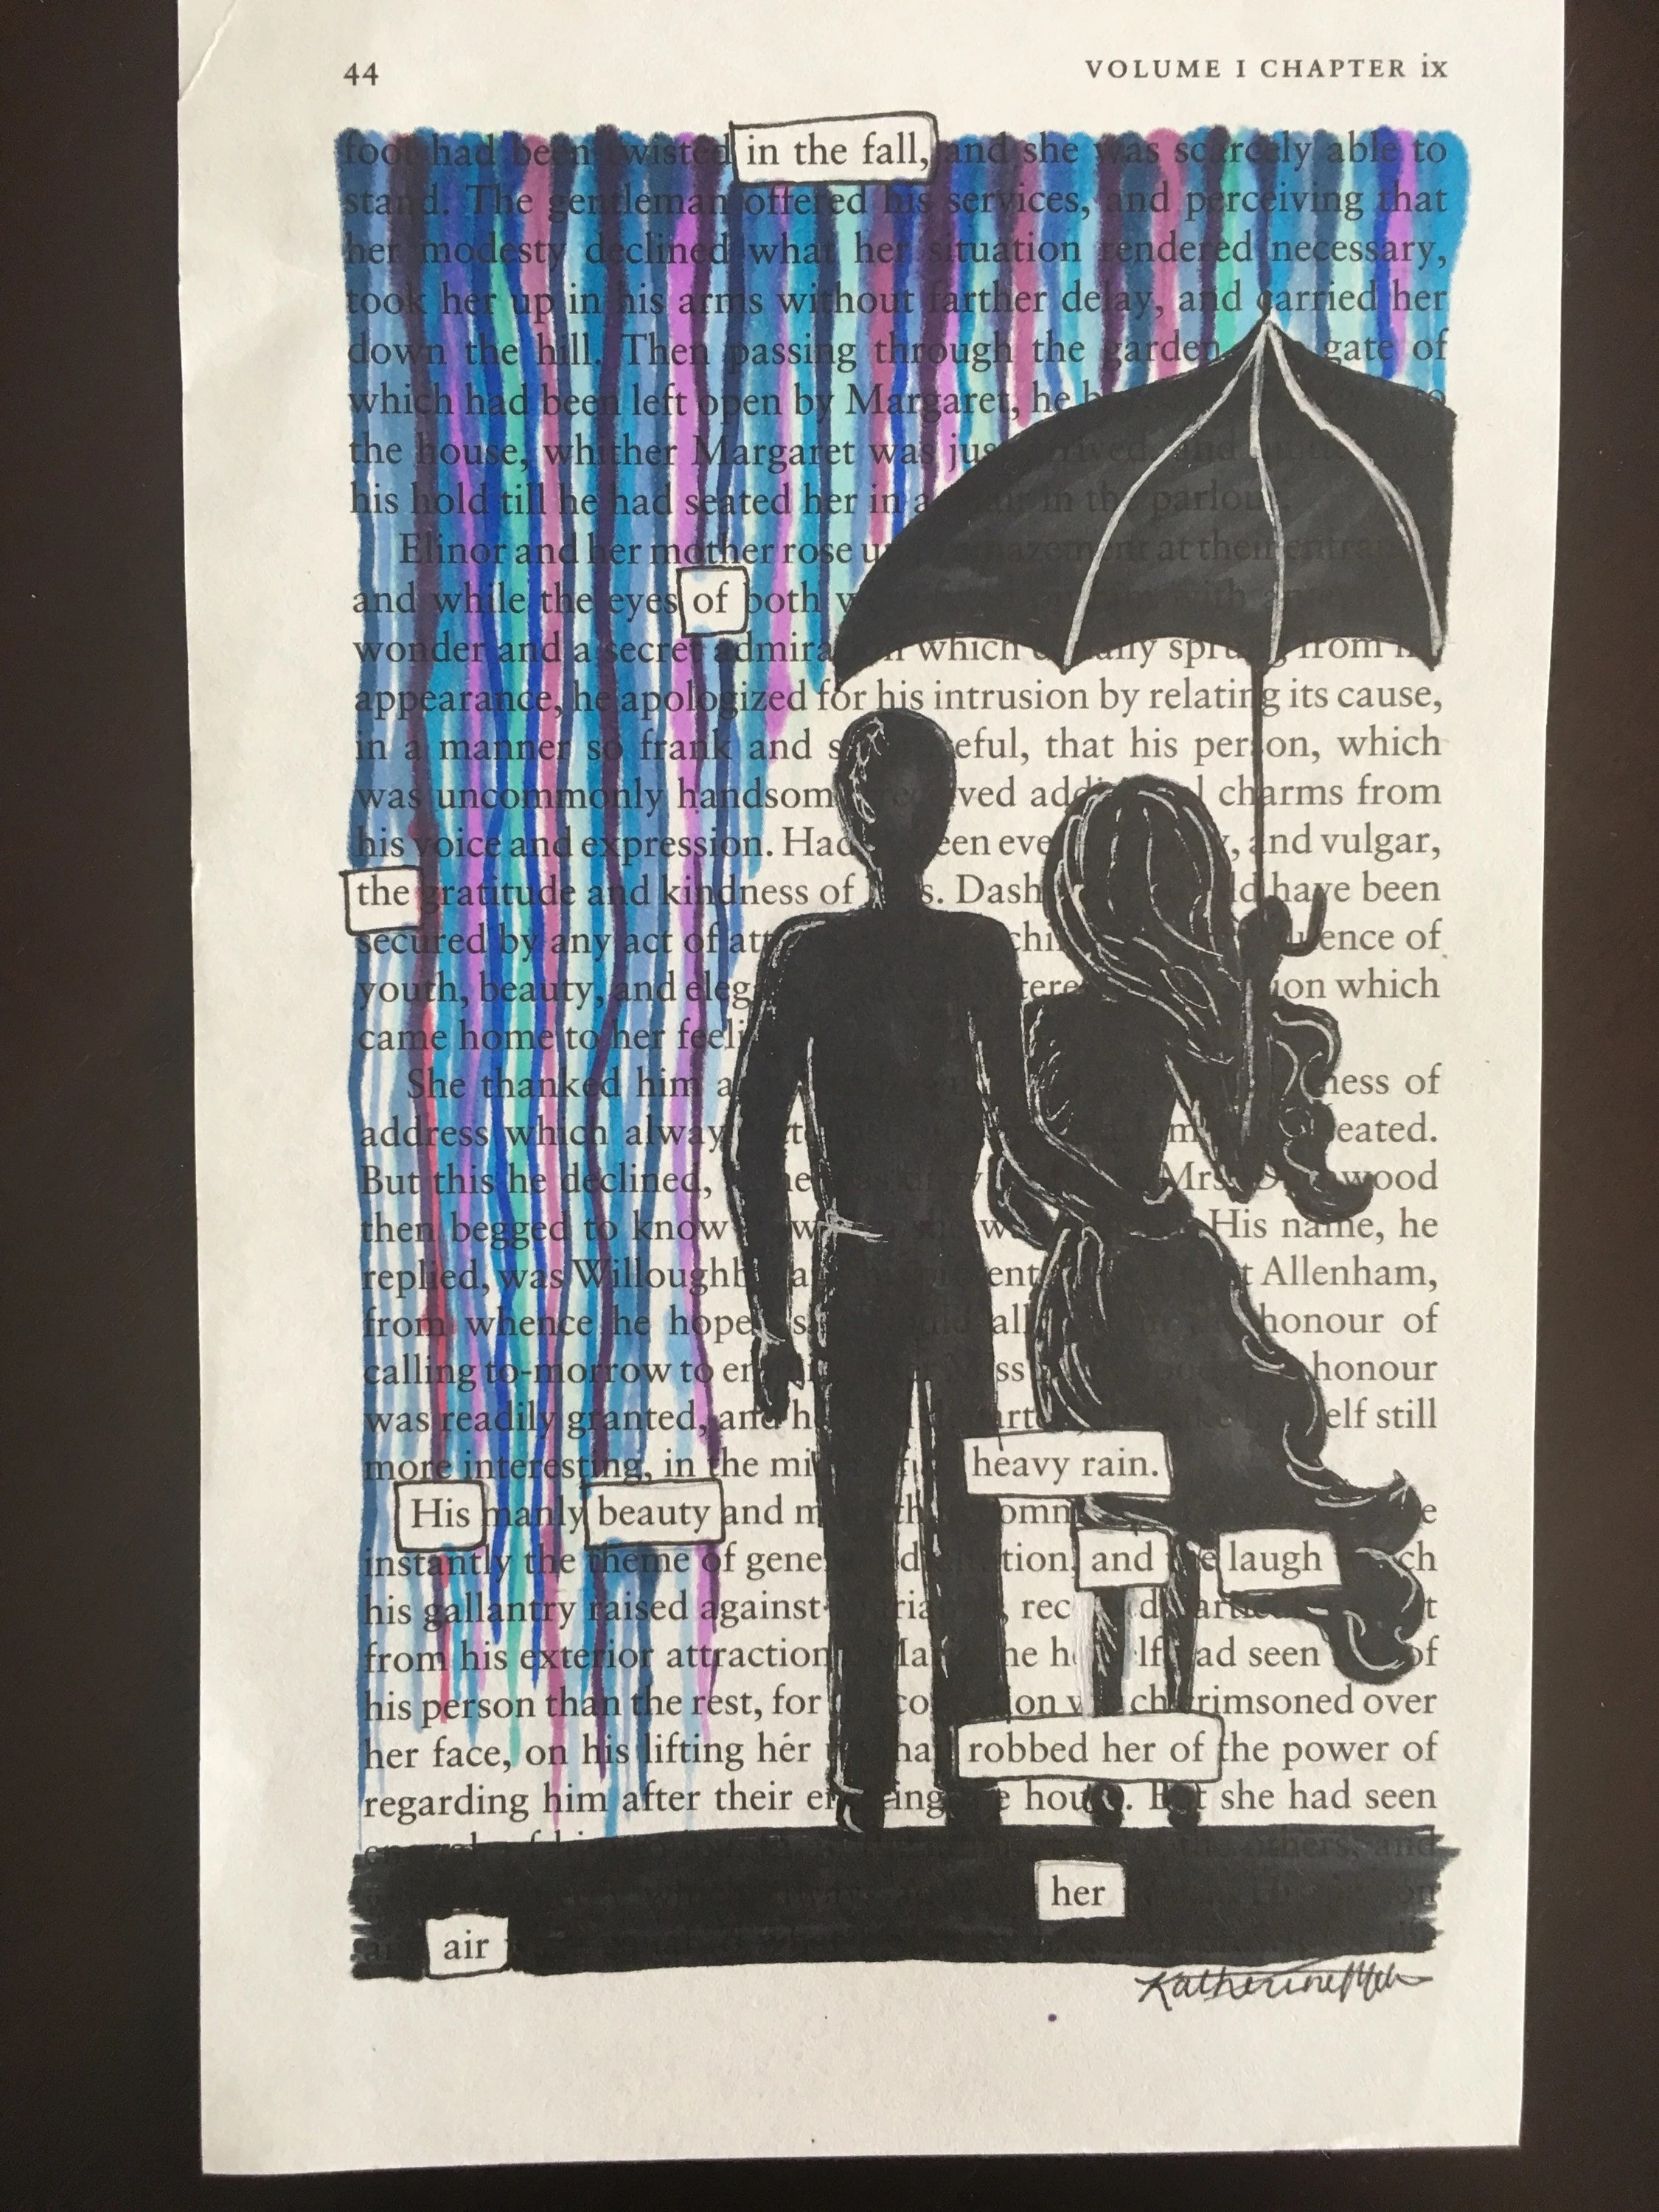 Cadeaupapier Opbergen The Rain Blackout Poetry Art Artwork Book Art Word Art Poem Quote Words Love Marriage Umbrella Happiness High Quality Print